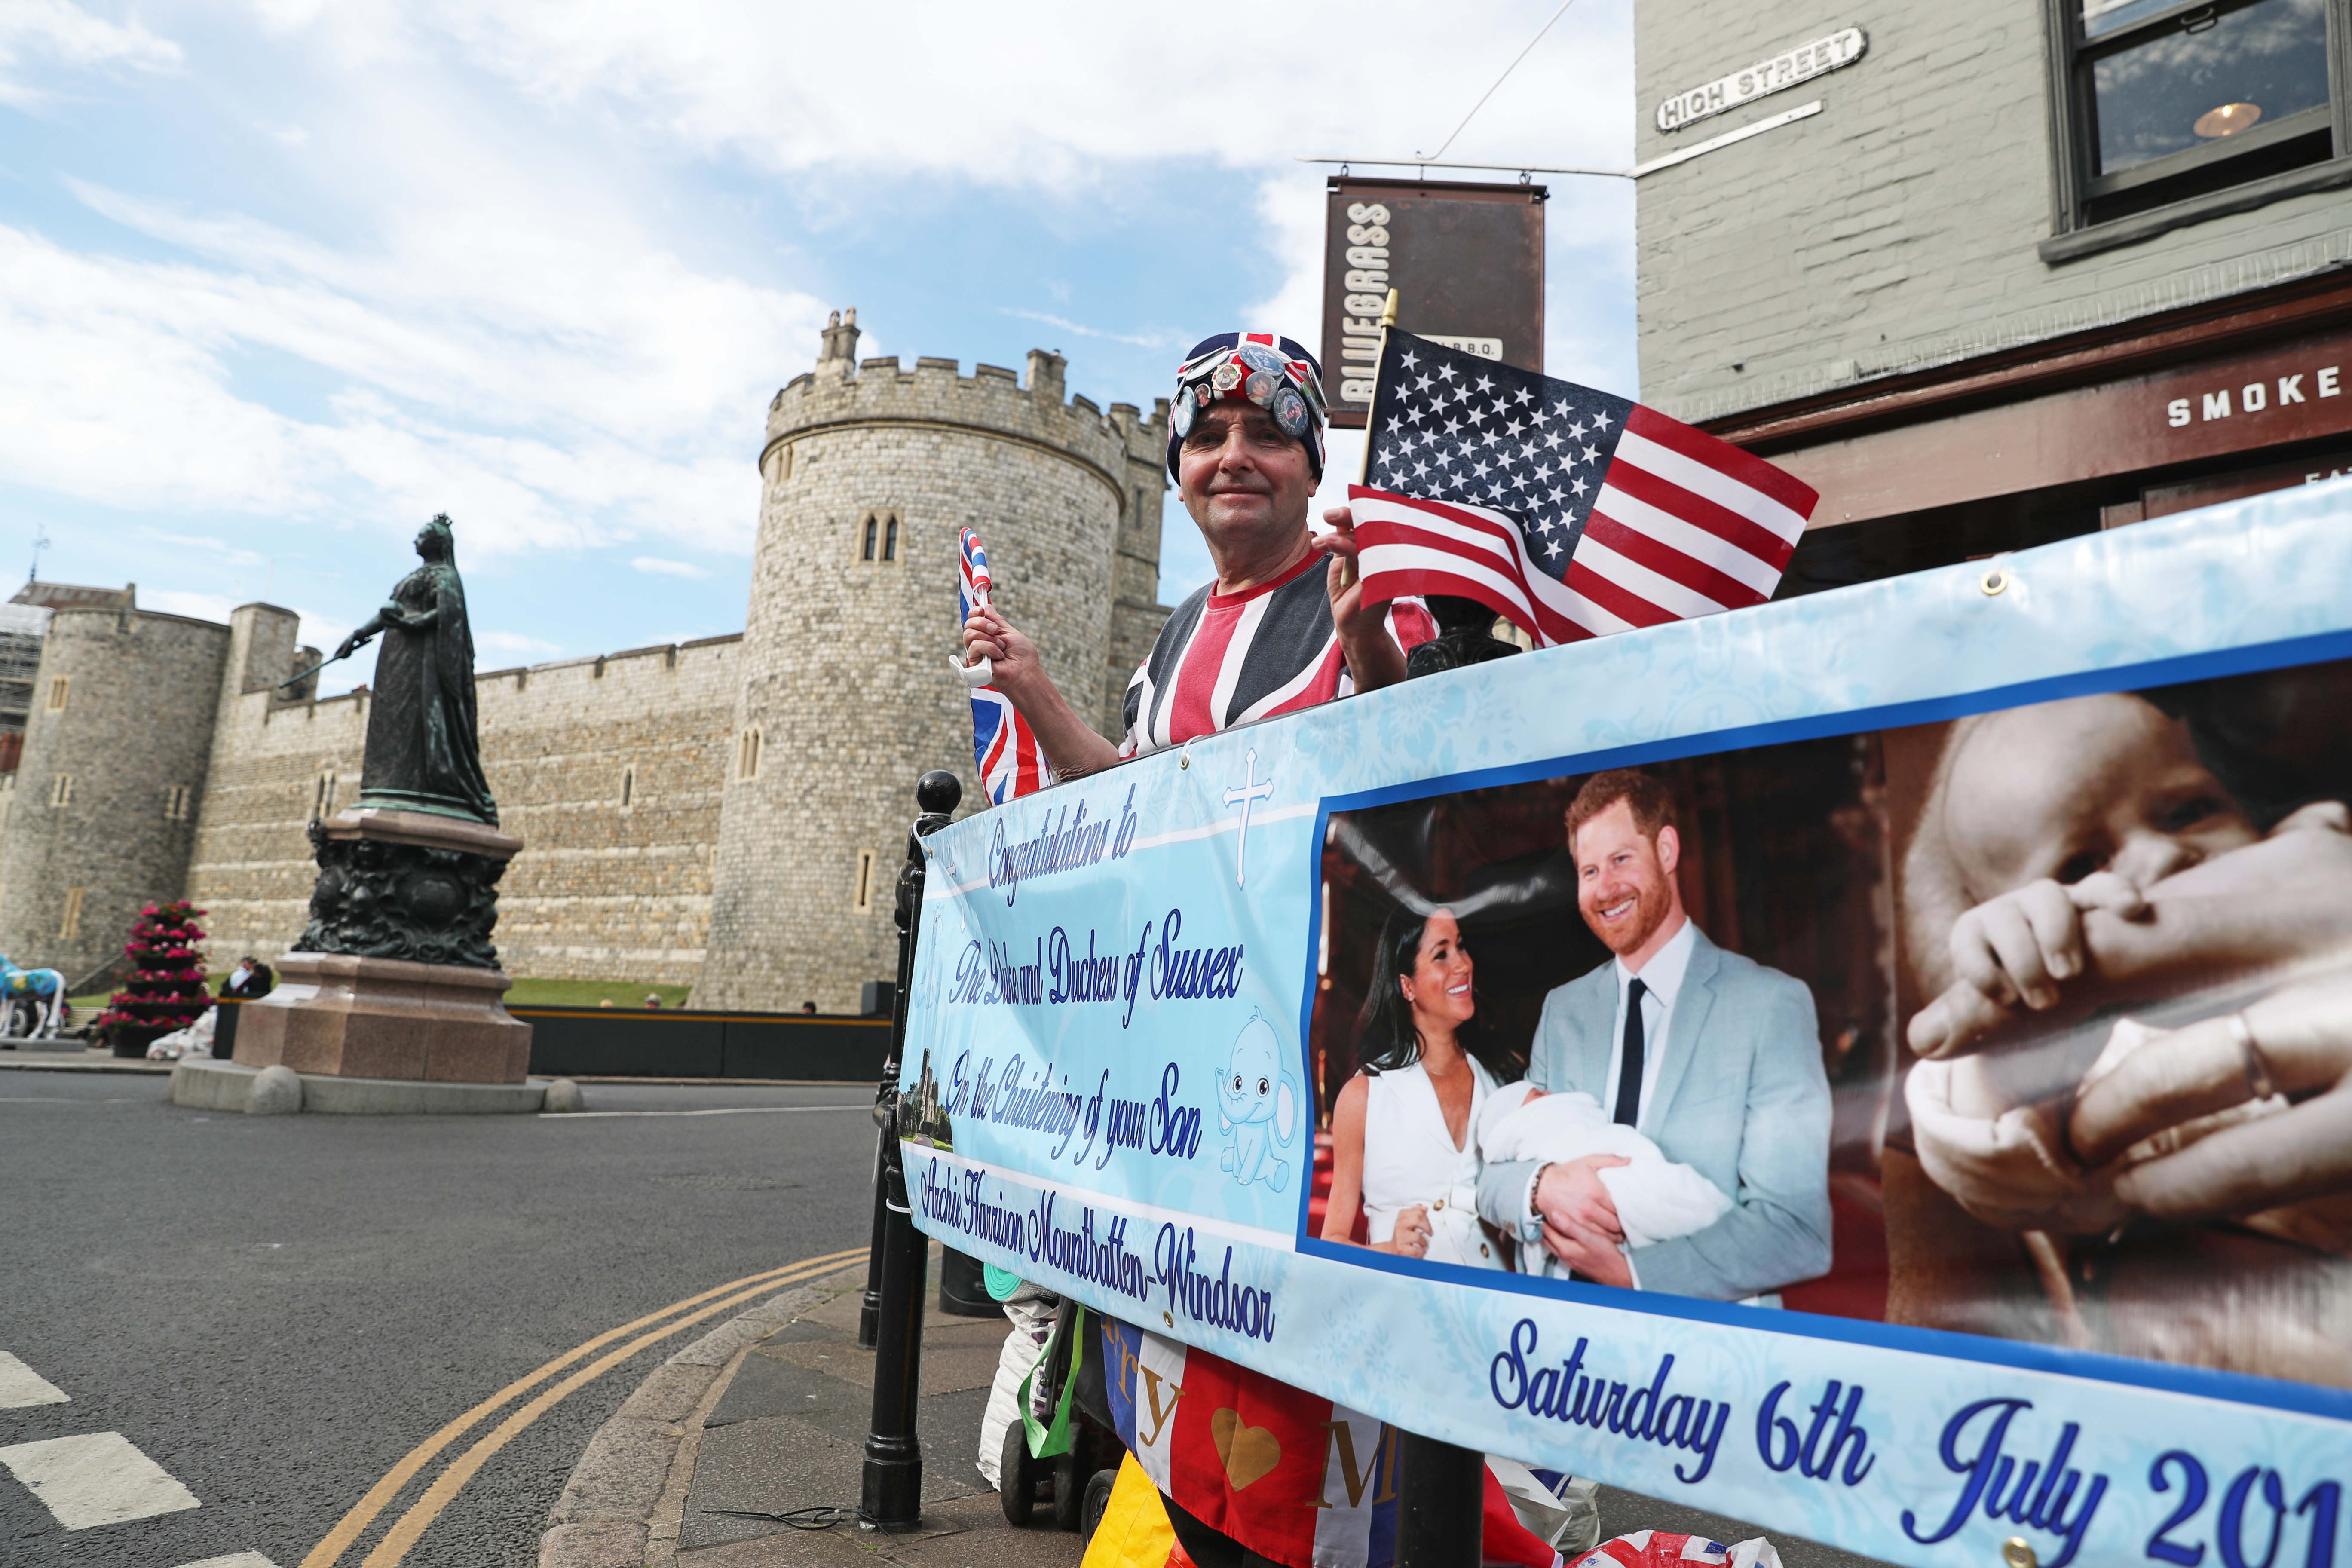 Royal fan John Loughrey, 64, camped out in Windsor ahead of the royal christening of the Duke and Duchess of Sussex's son, Archie, at Windsor Castle tomorrow.